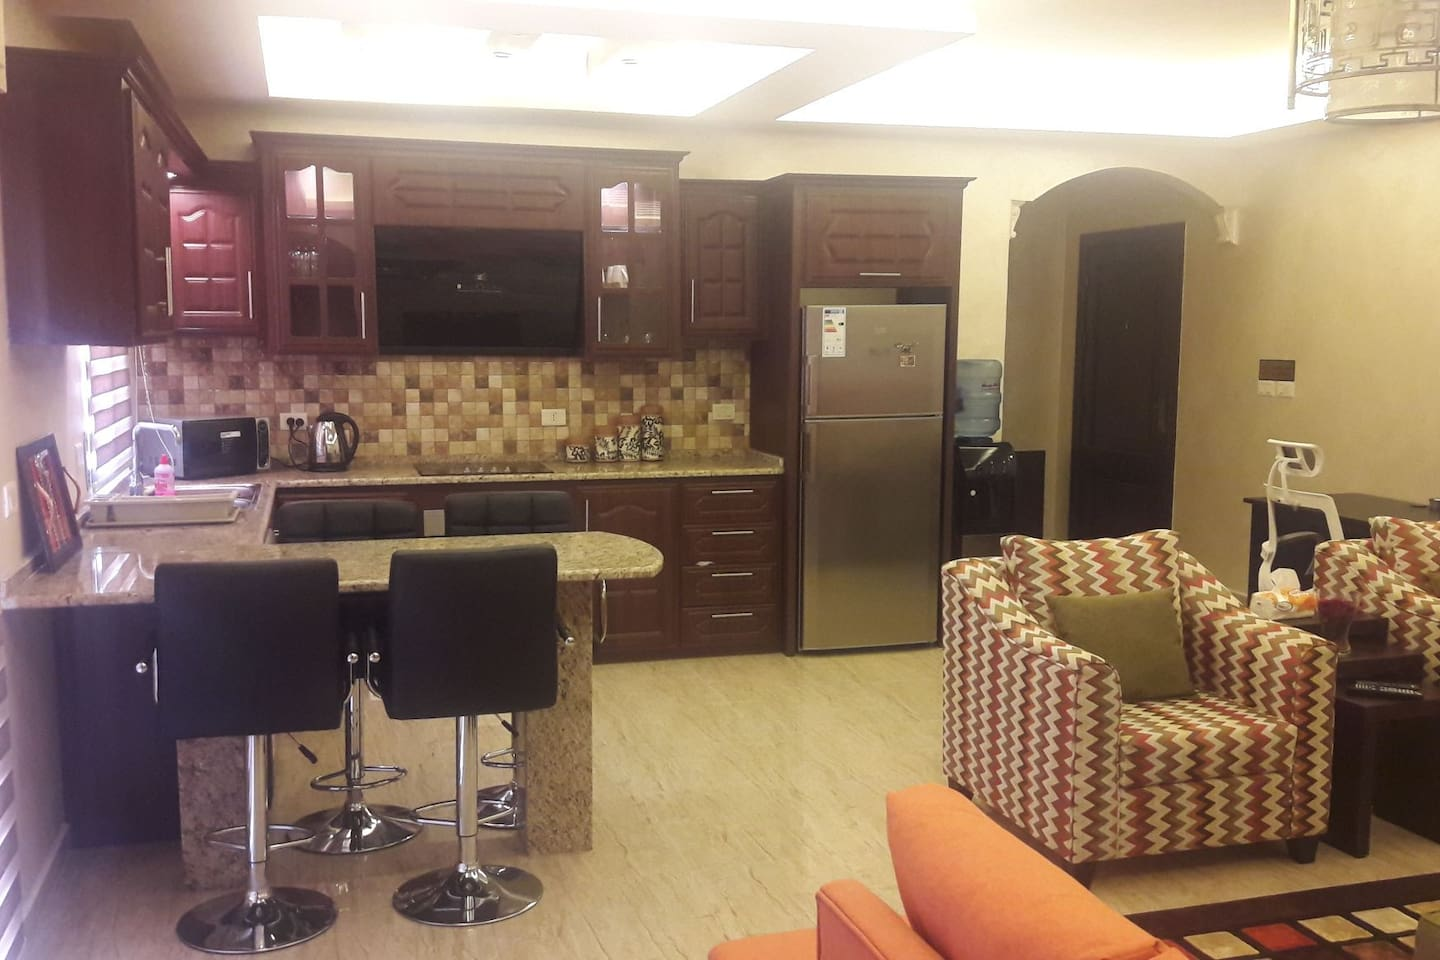 The kitchen is opened to the living room with full house wear & high end appliances (Fridge, microwave, kettle, hood, cook top, oven, cooler, toaster), We provide you with pure drinking water.